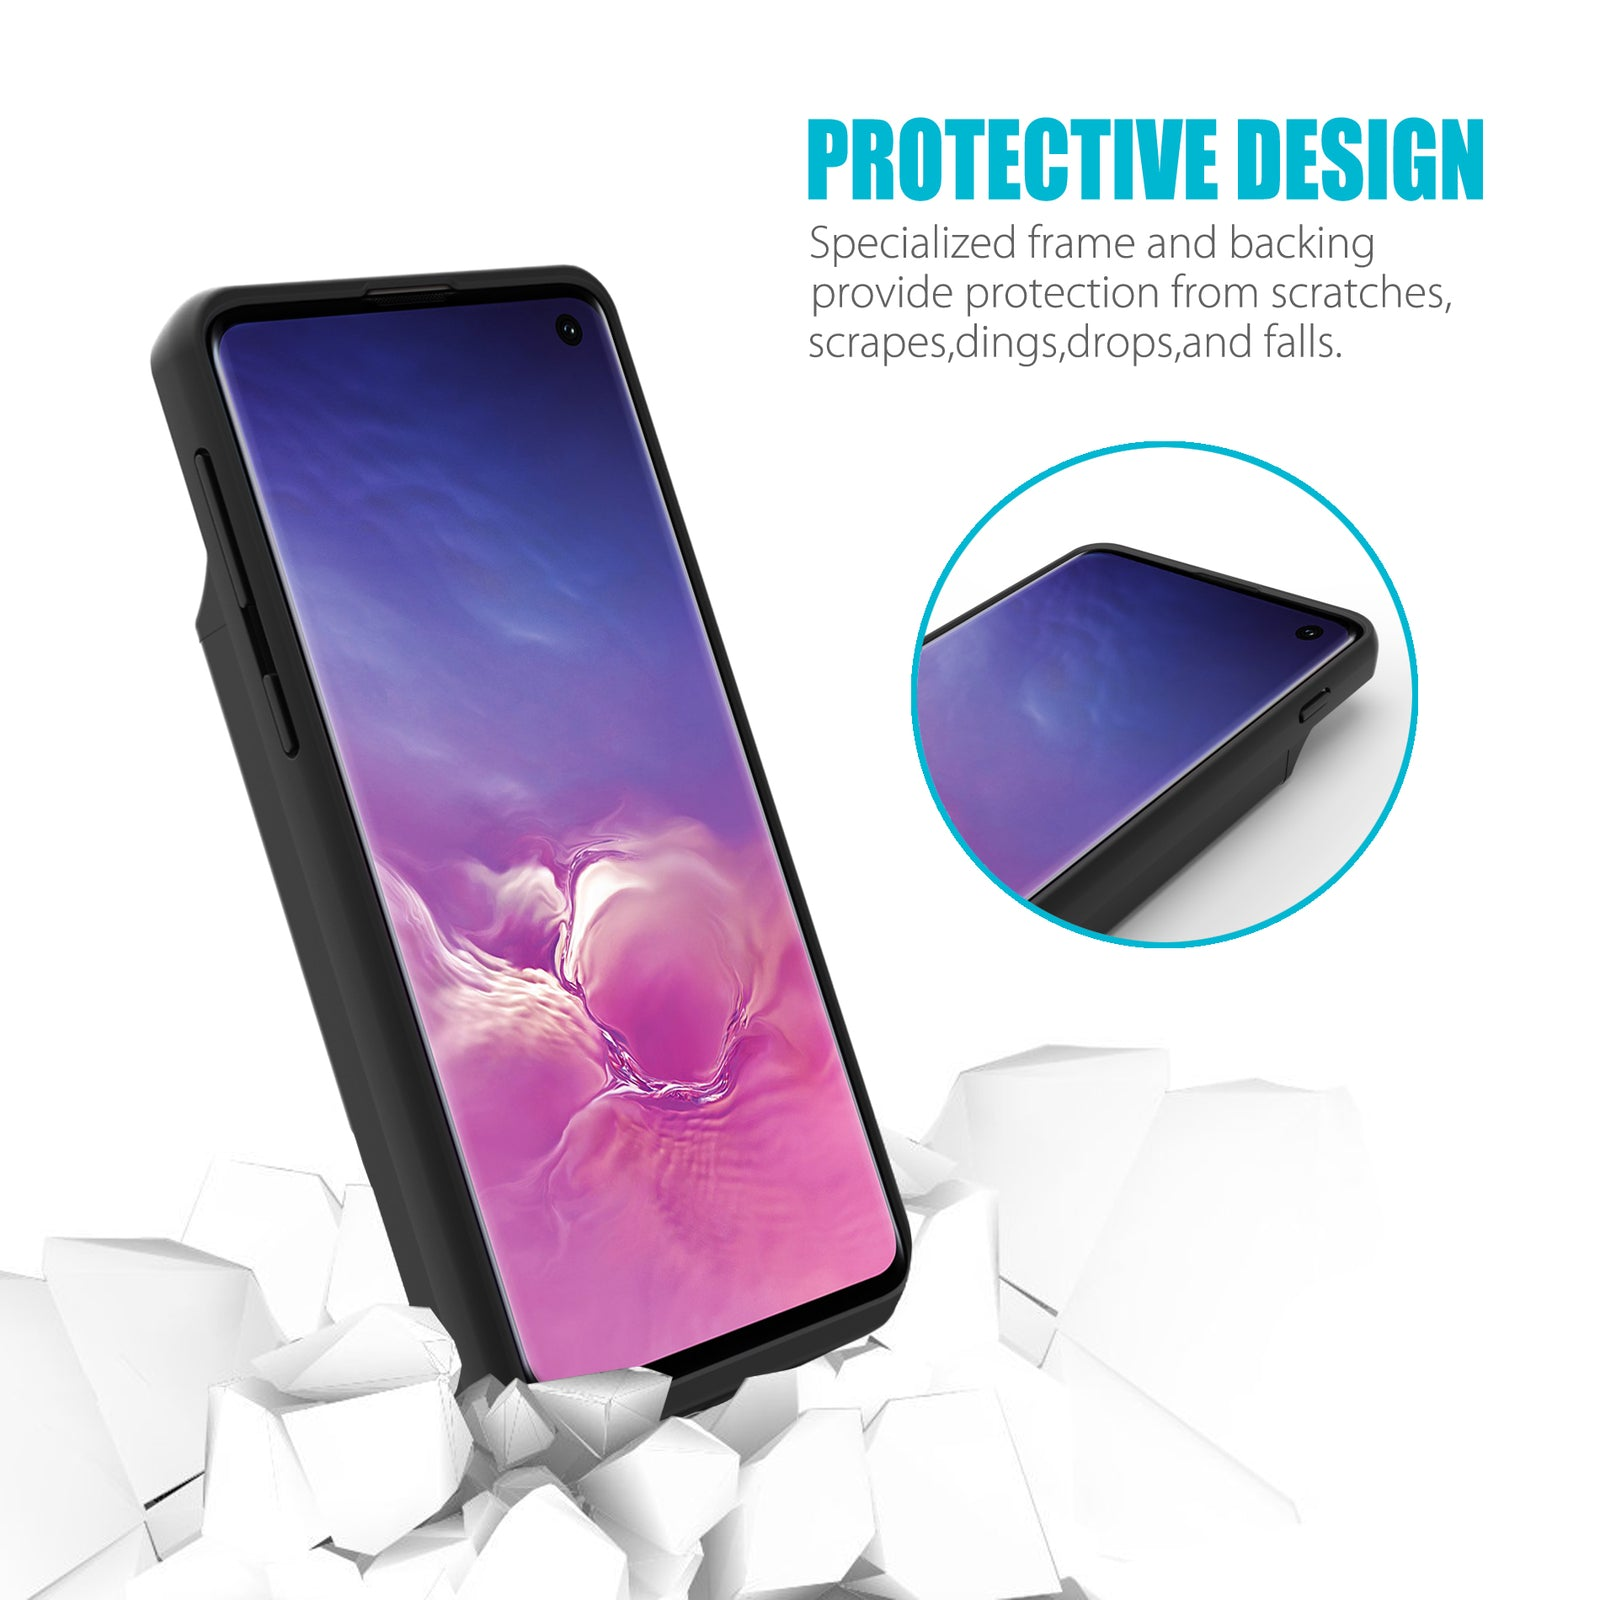 Galaxy S10 Extended Battery Case 5000mAh